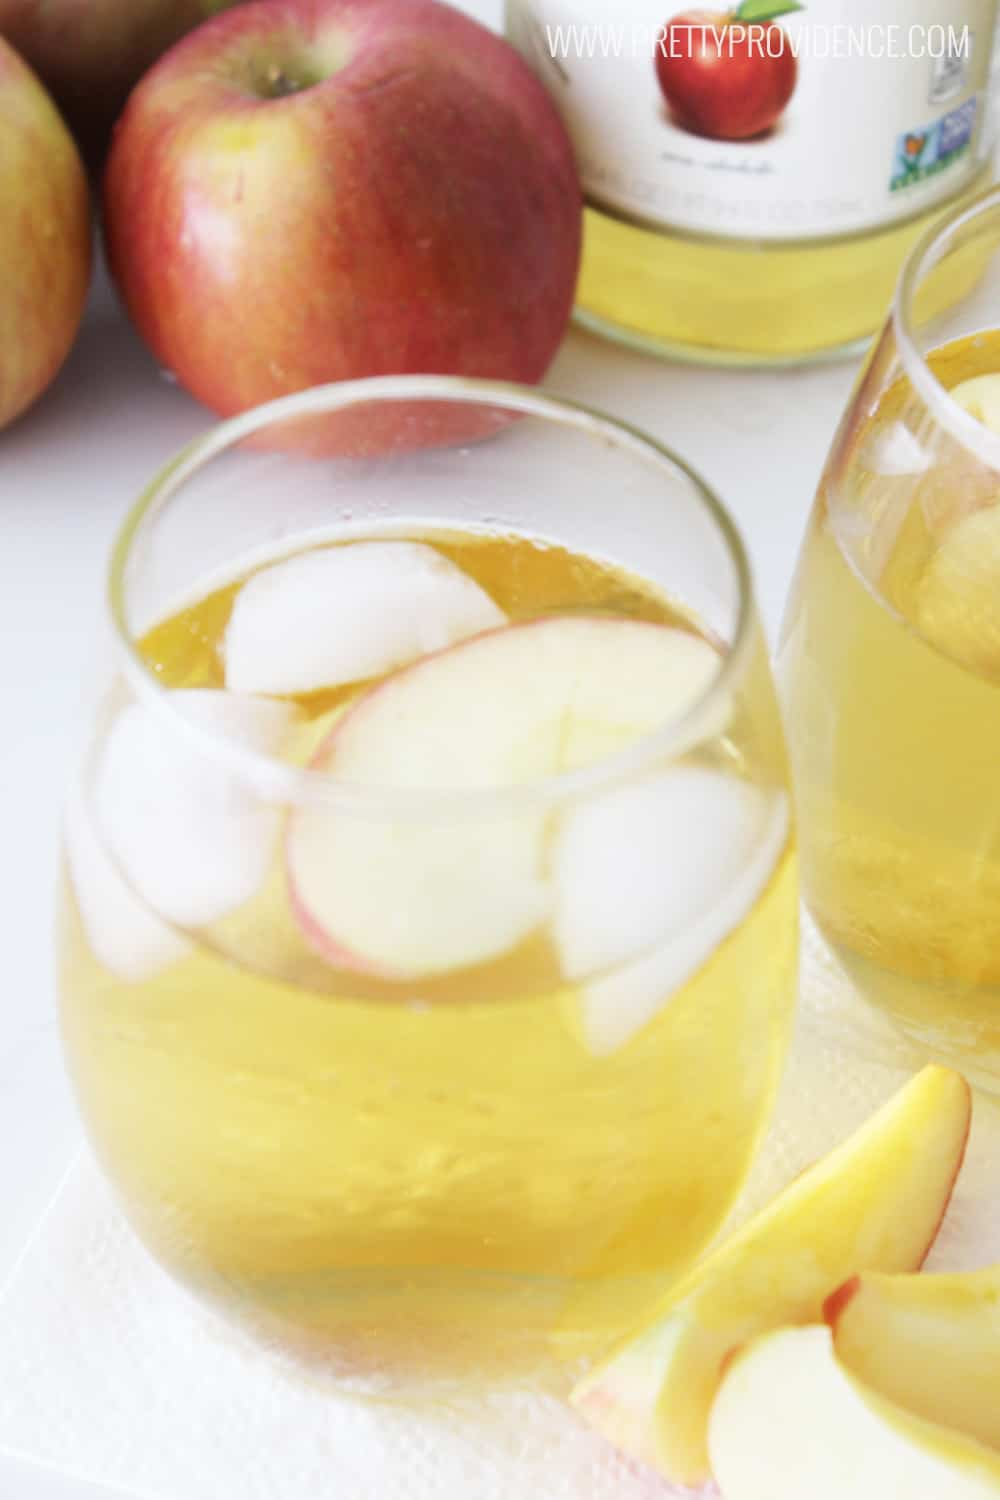 stemless wine glass with ice and sparkling cider, apples and bottom of bottle in background